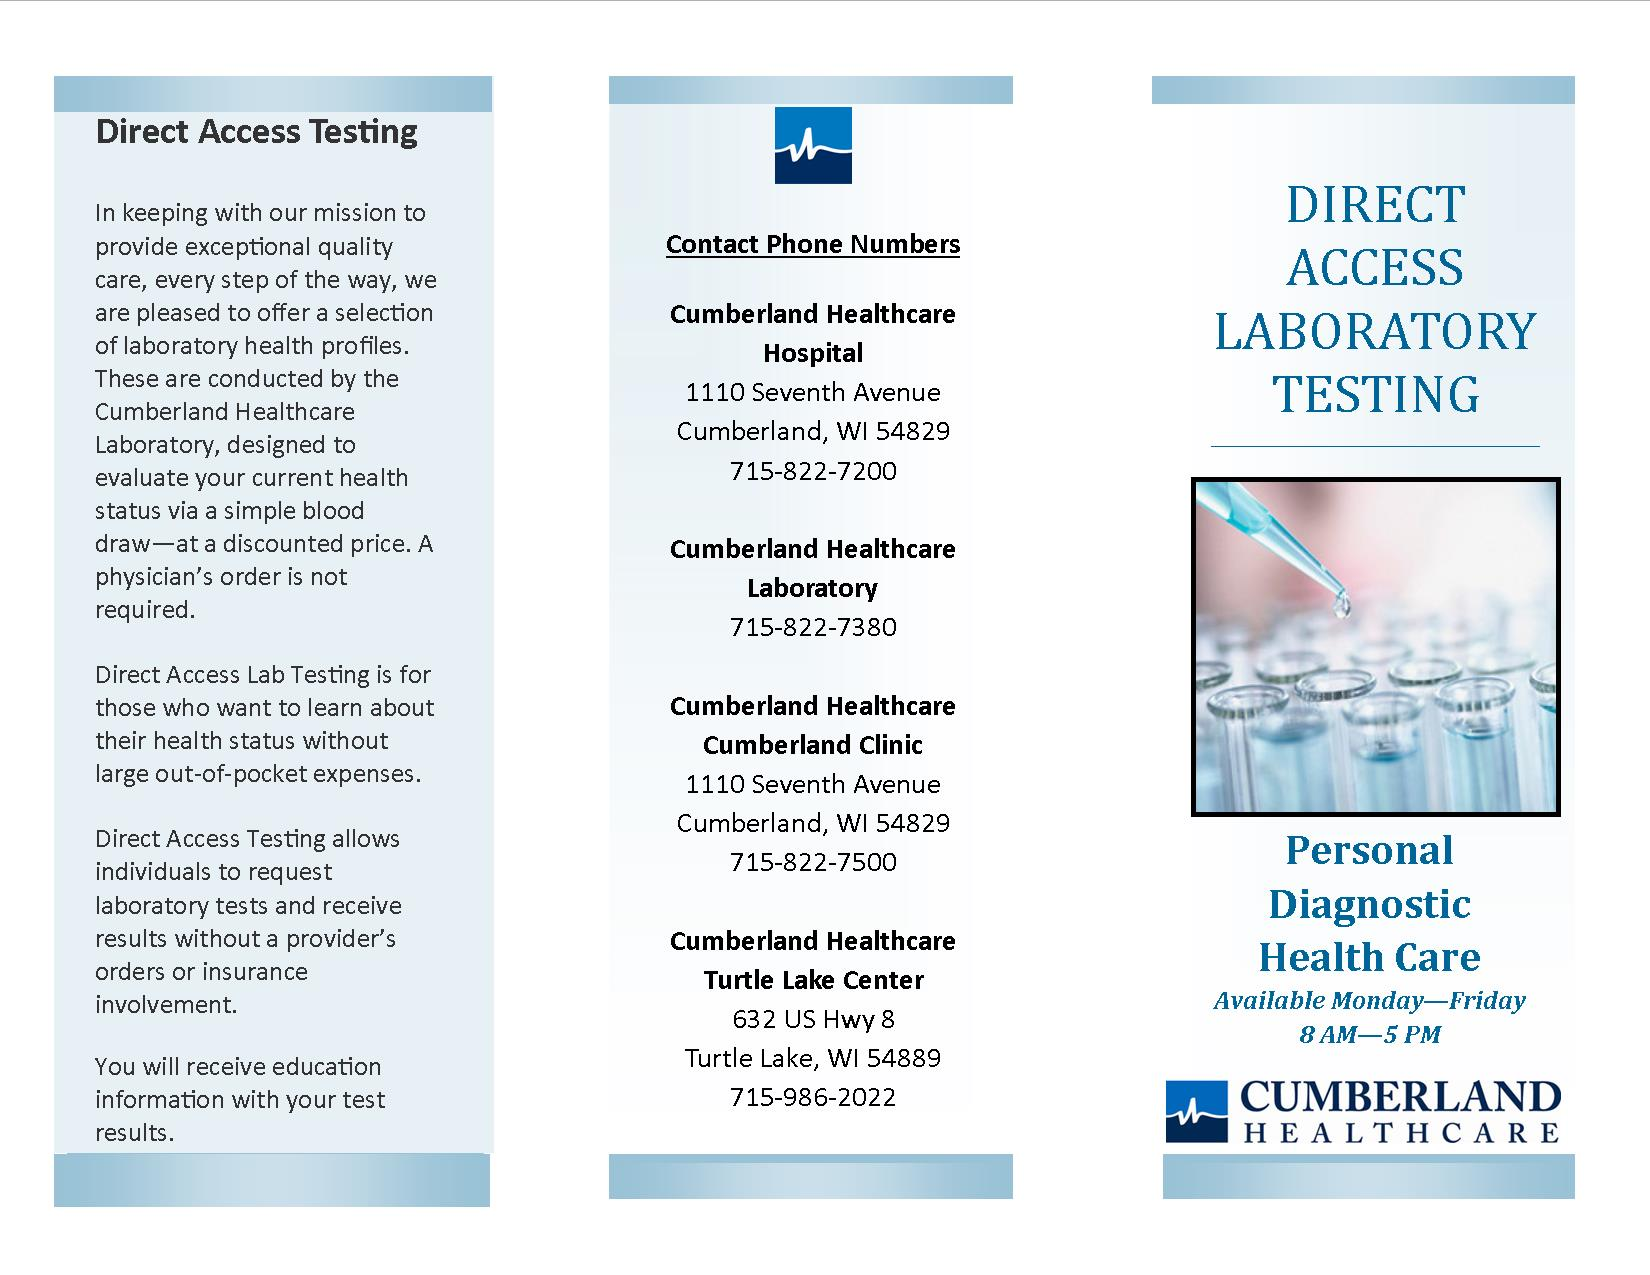 Direct access lab testing, screening, fees, lab orders